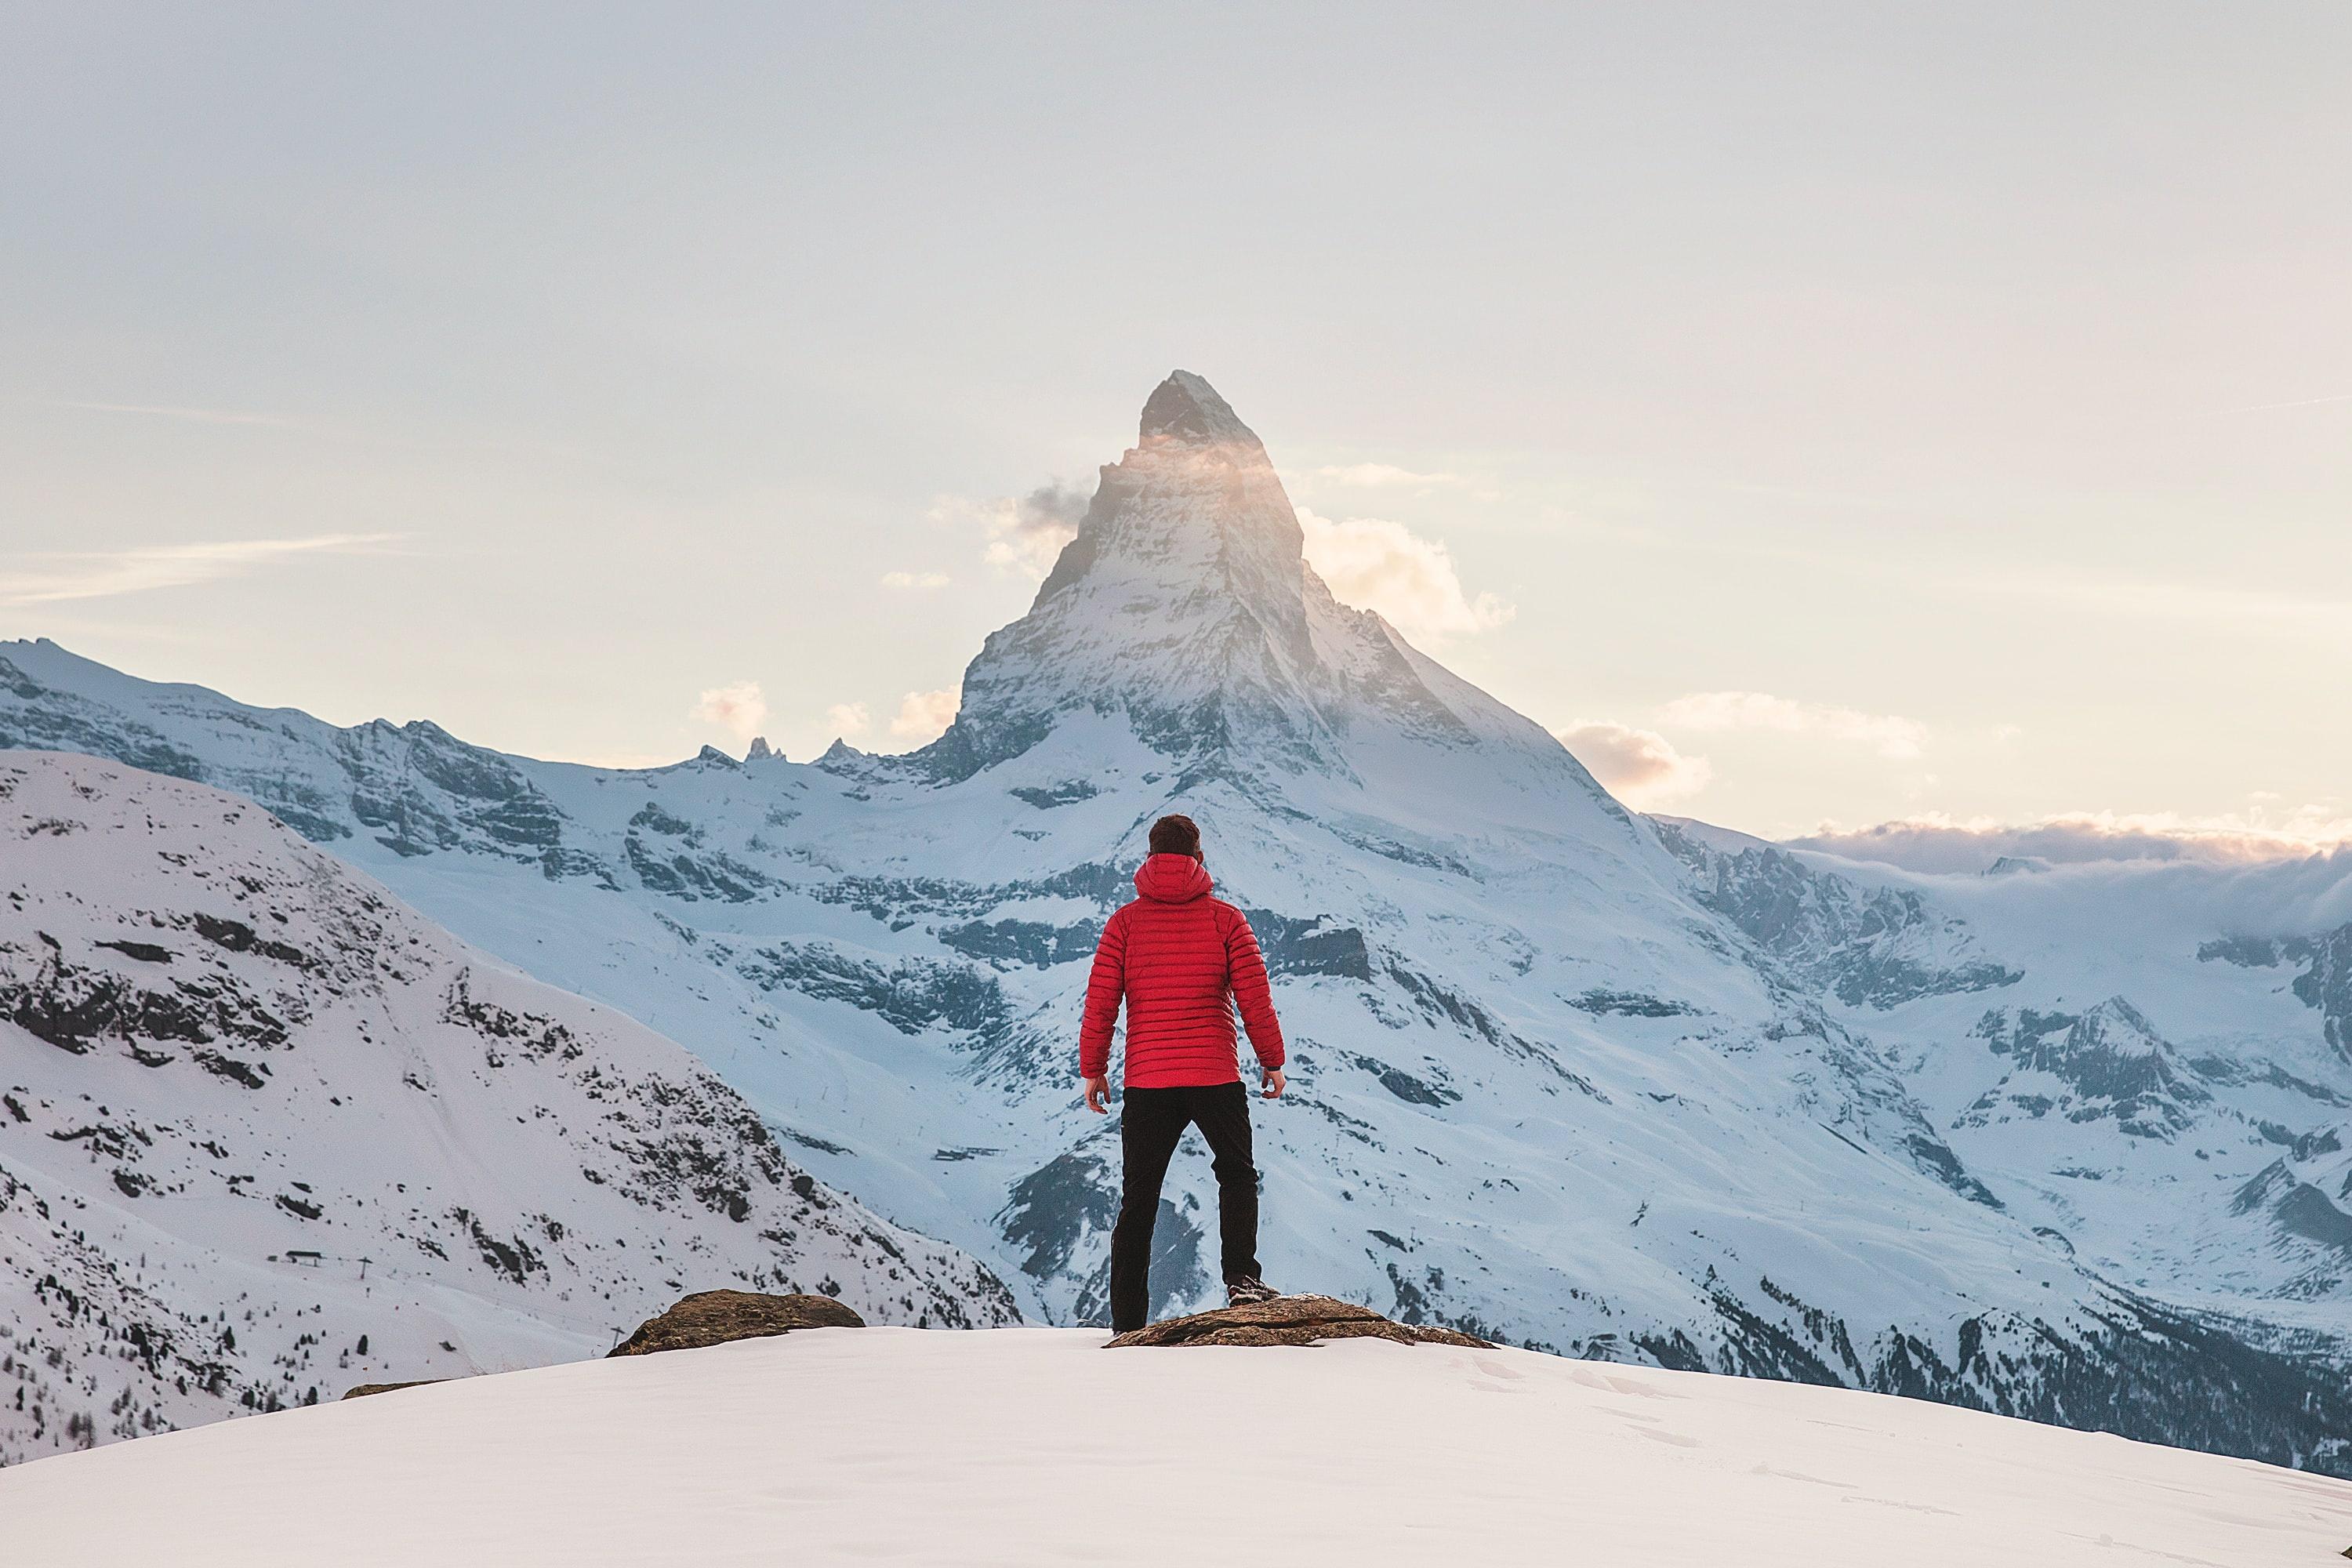 Photo of a man standing in front of a snowy mountain.